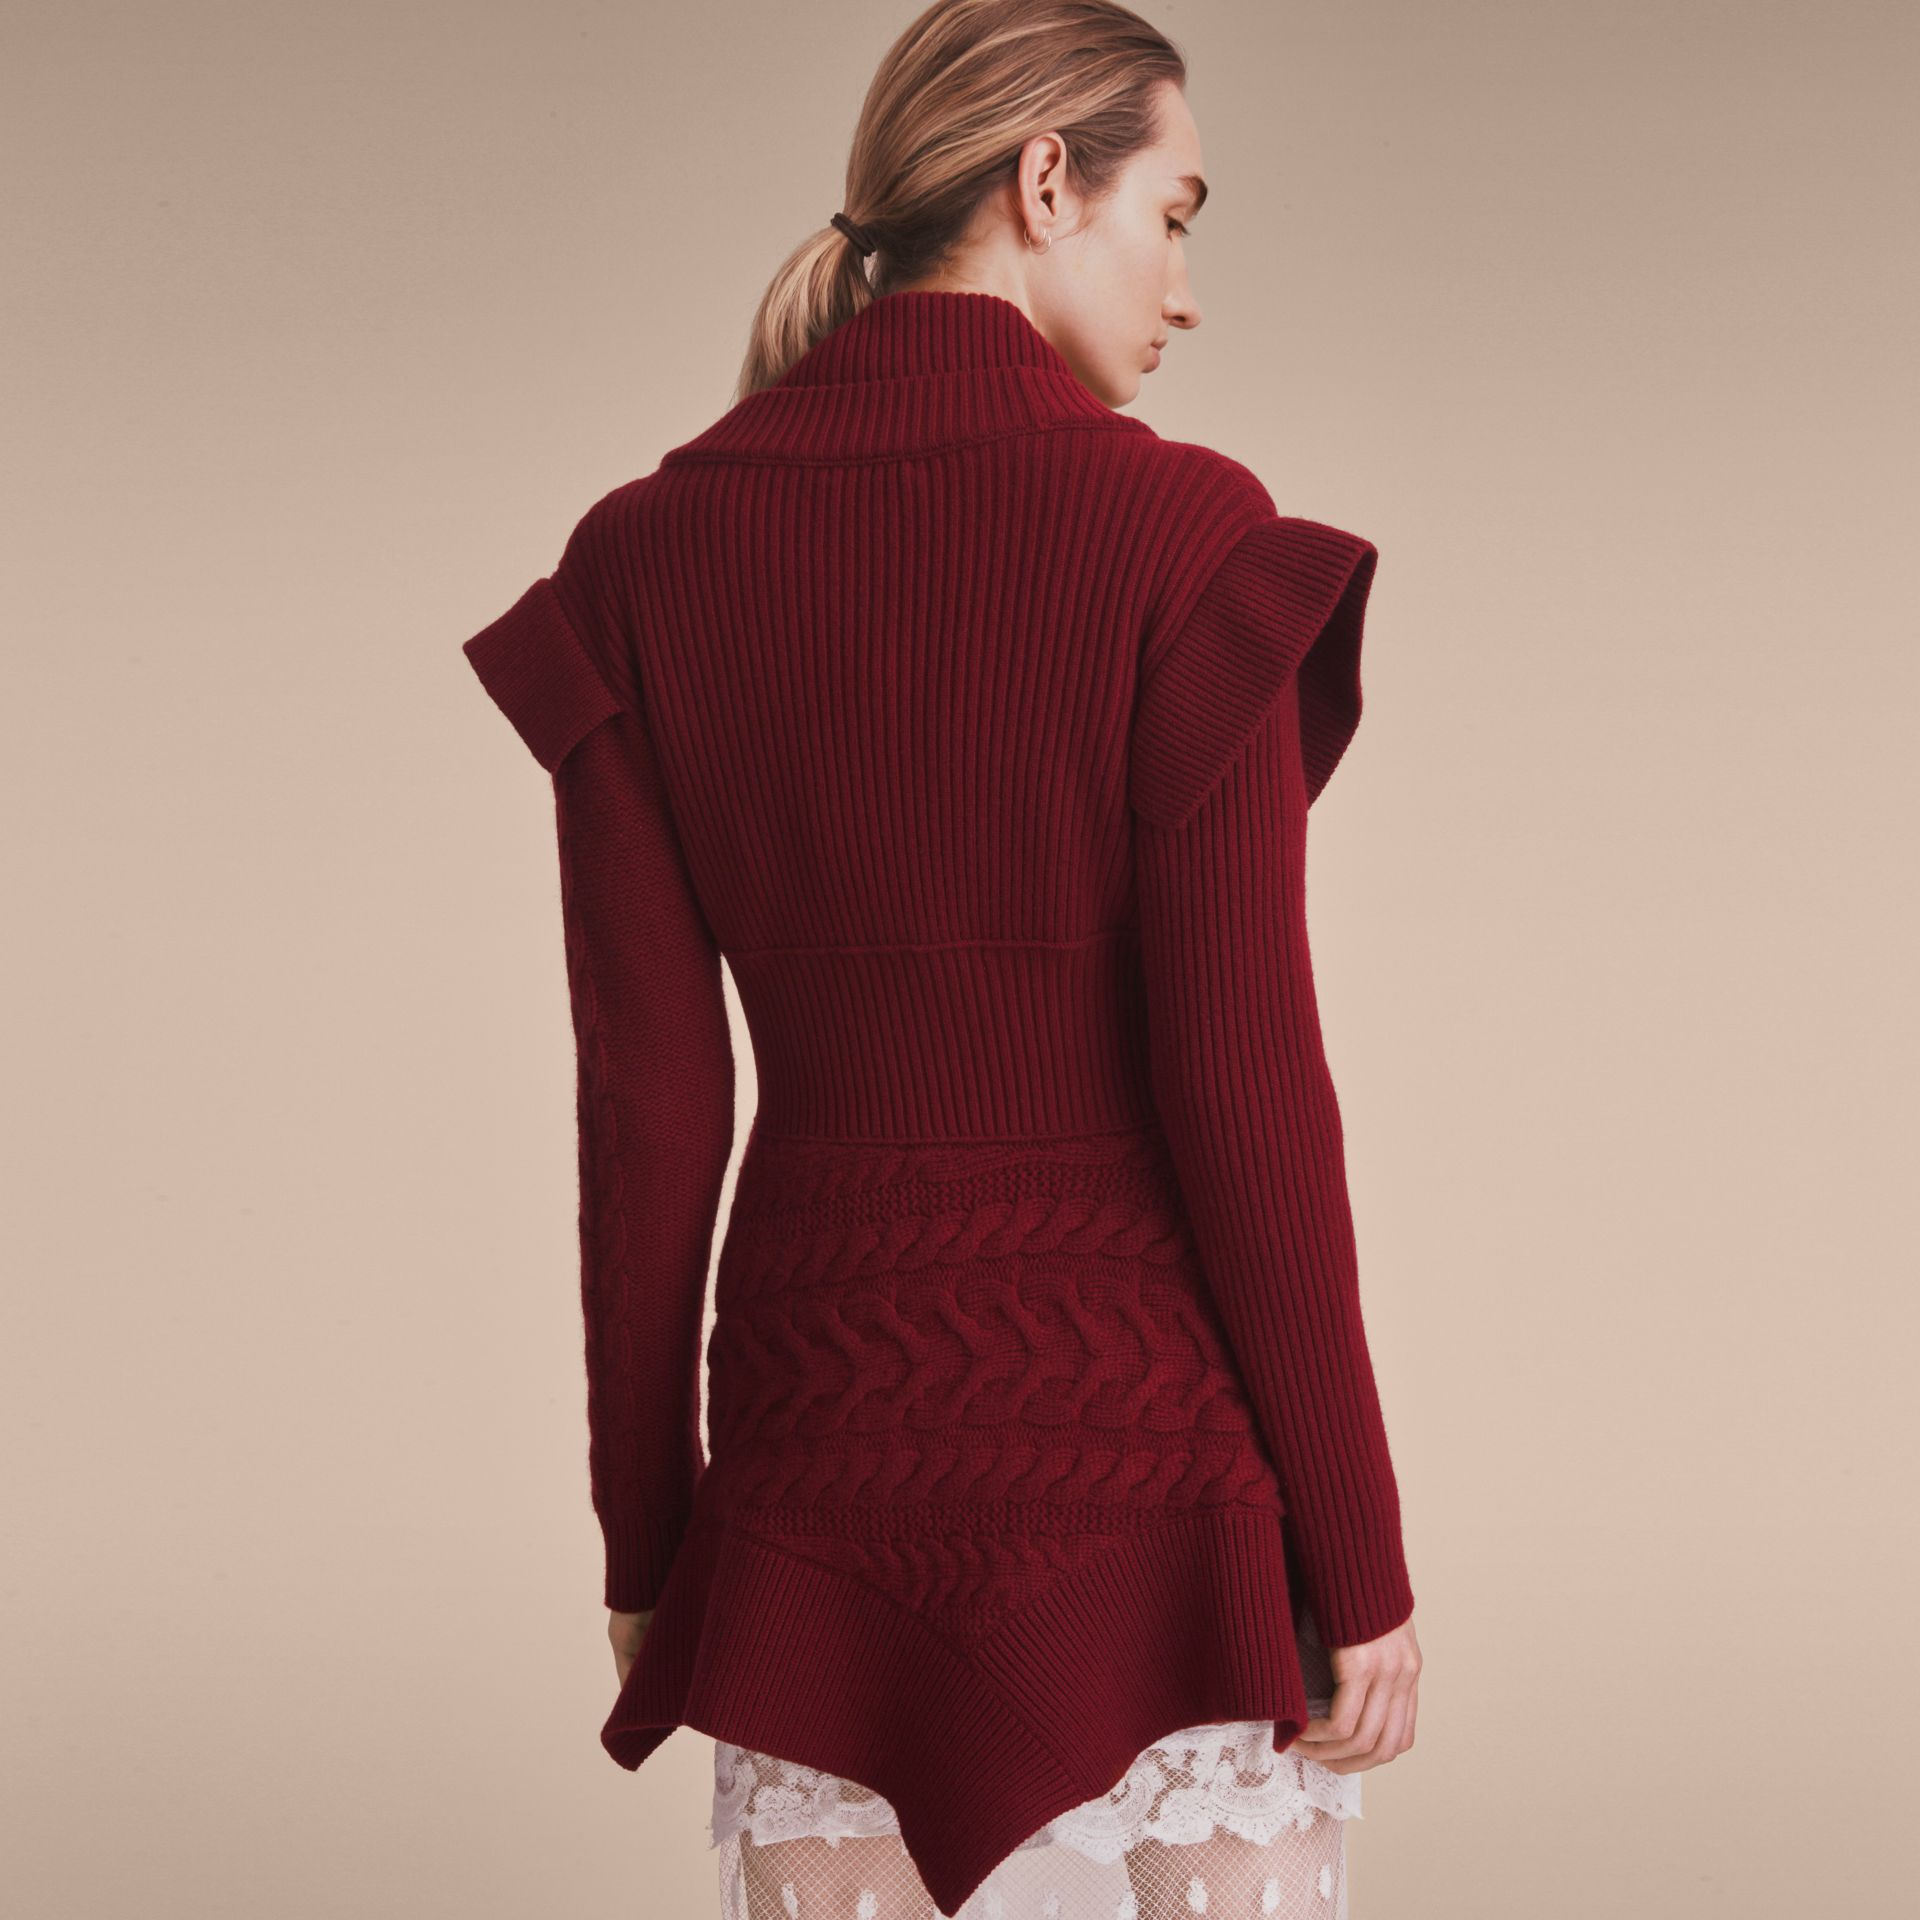 Knitted Wool Cashmere Military-inspired Jacket in Bordeaux - Women | Burberry - gallery image 3